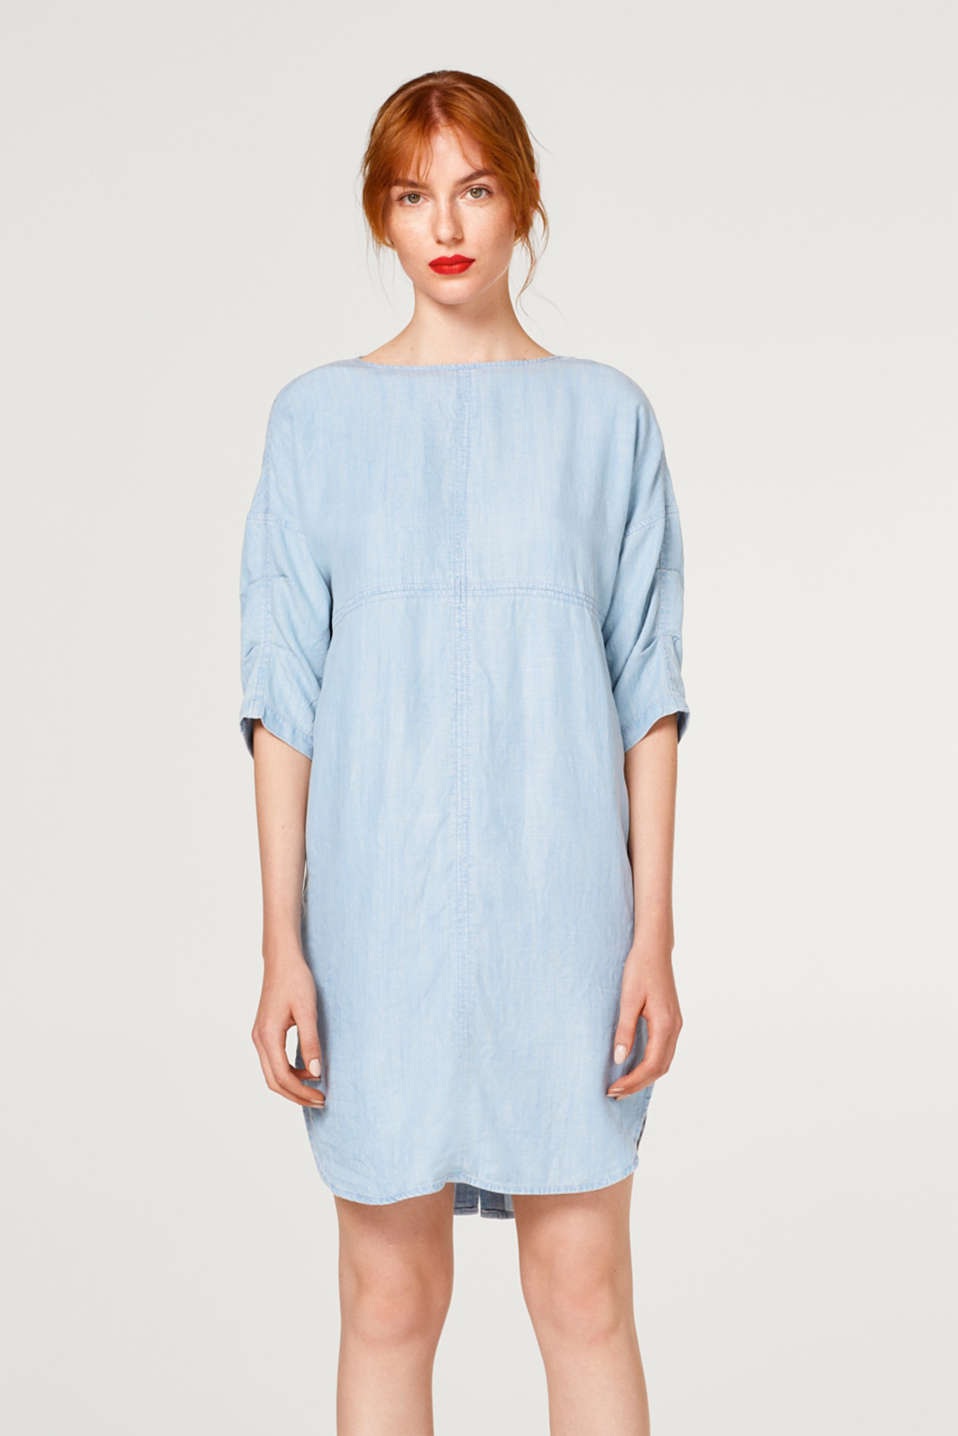 Esprit - Faded denim-effect dress made of lyocell